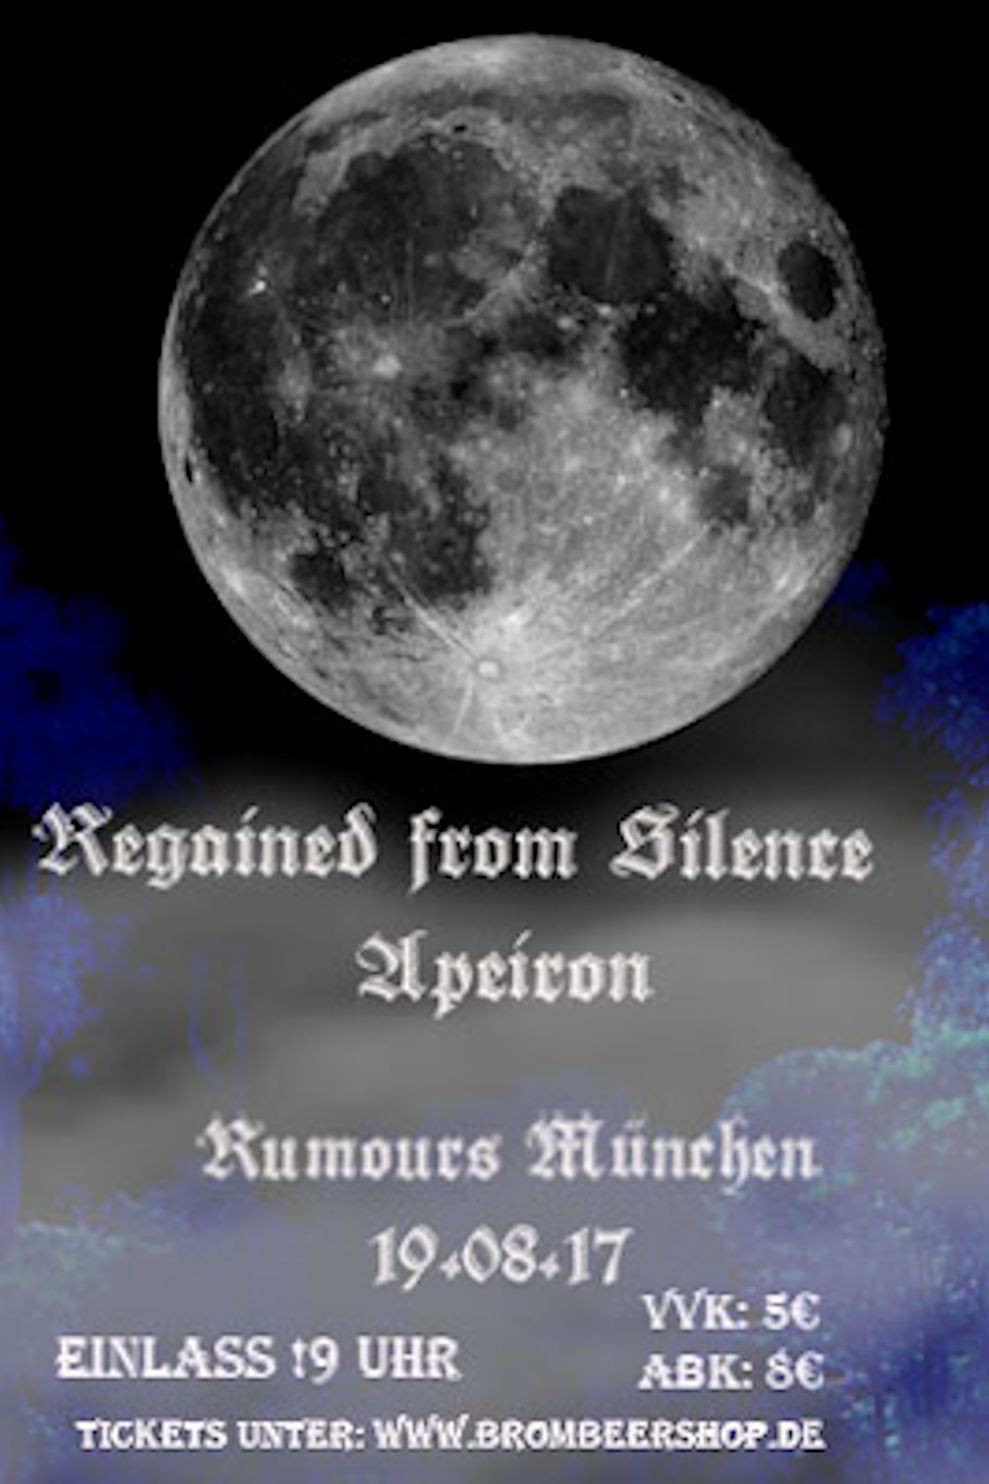 Regained from Silence Apeiron